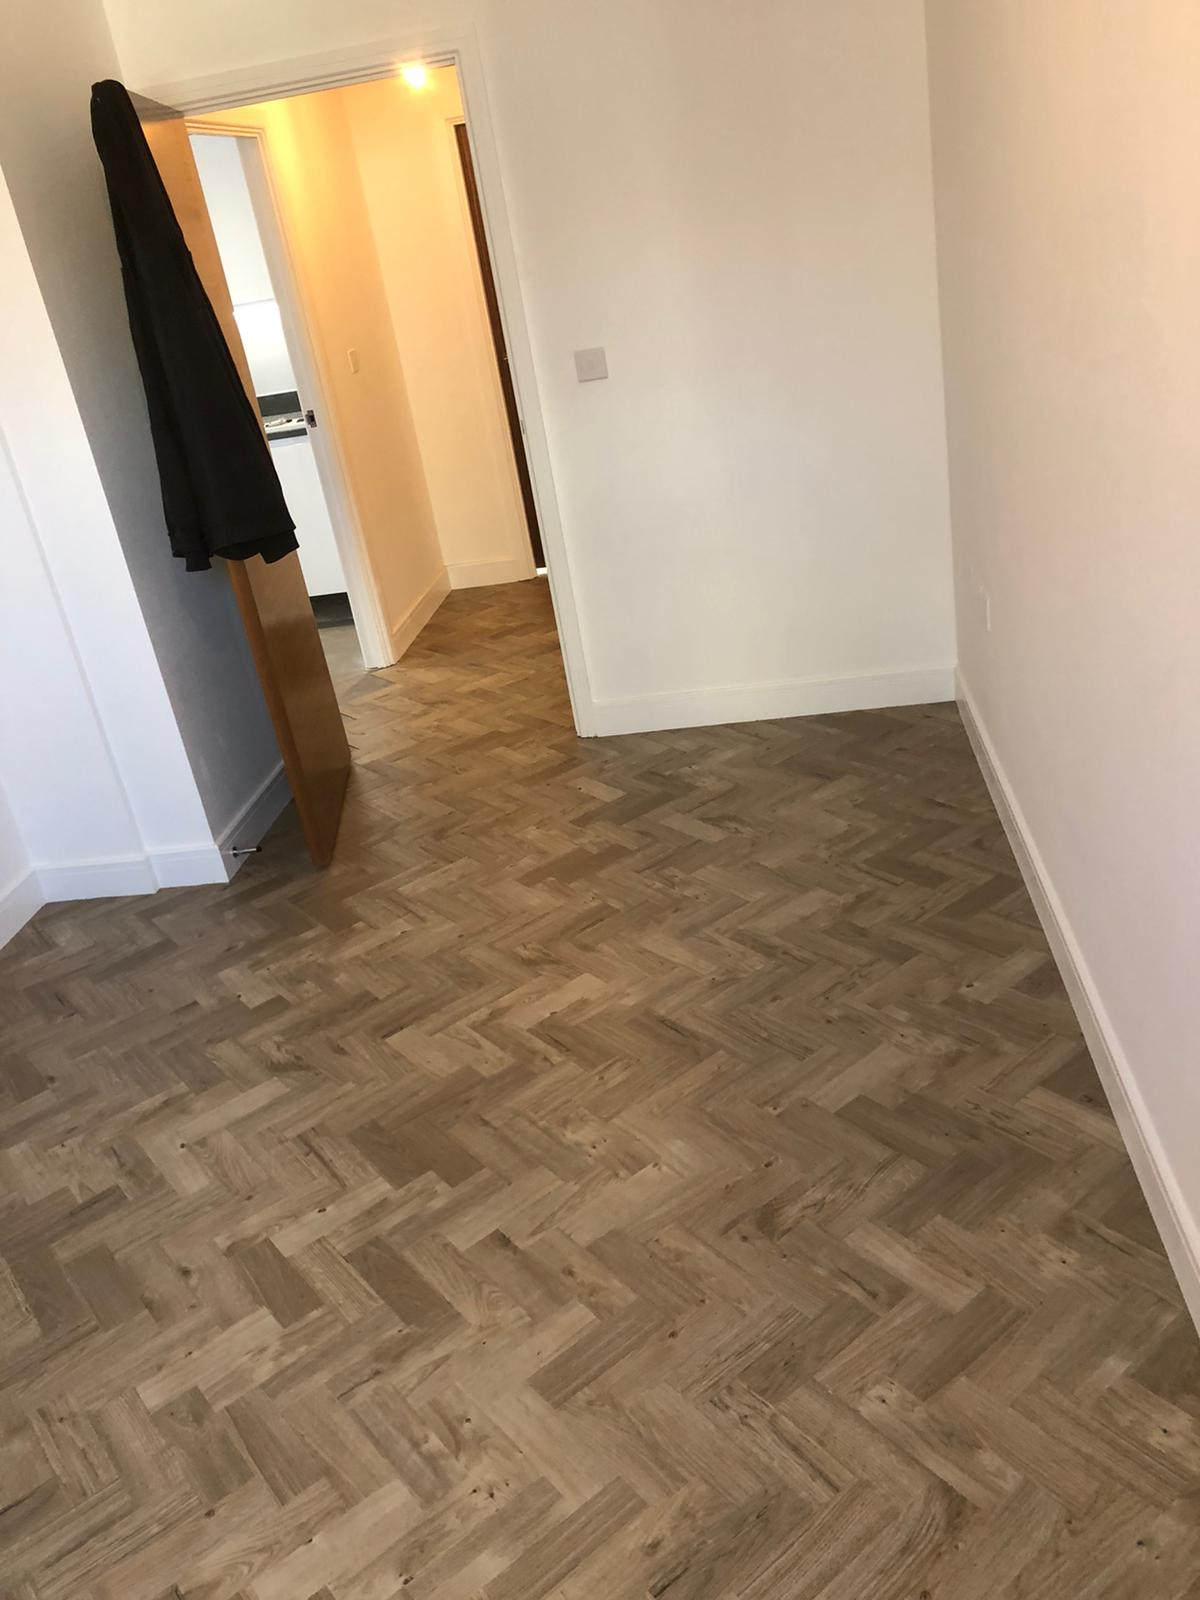 To supply & install Amtico Spacia Sun Bleached Oak luxury vinyl flooring in Kilburn 4